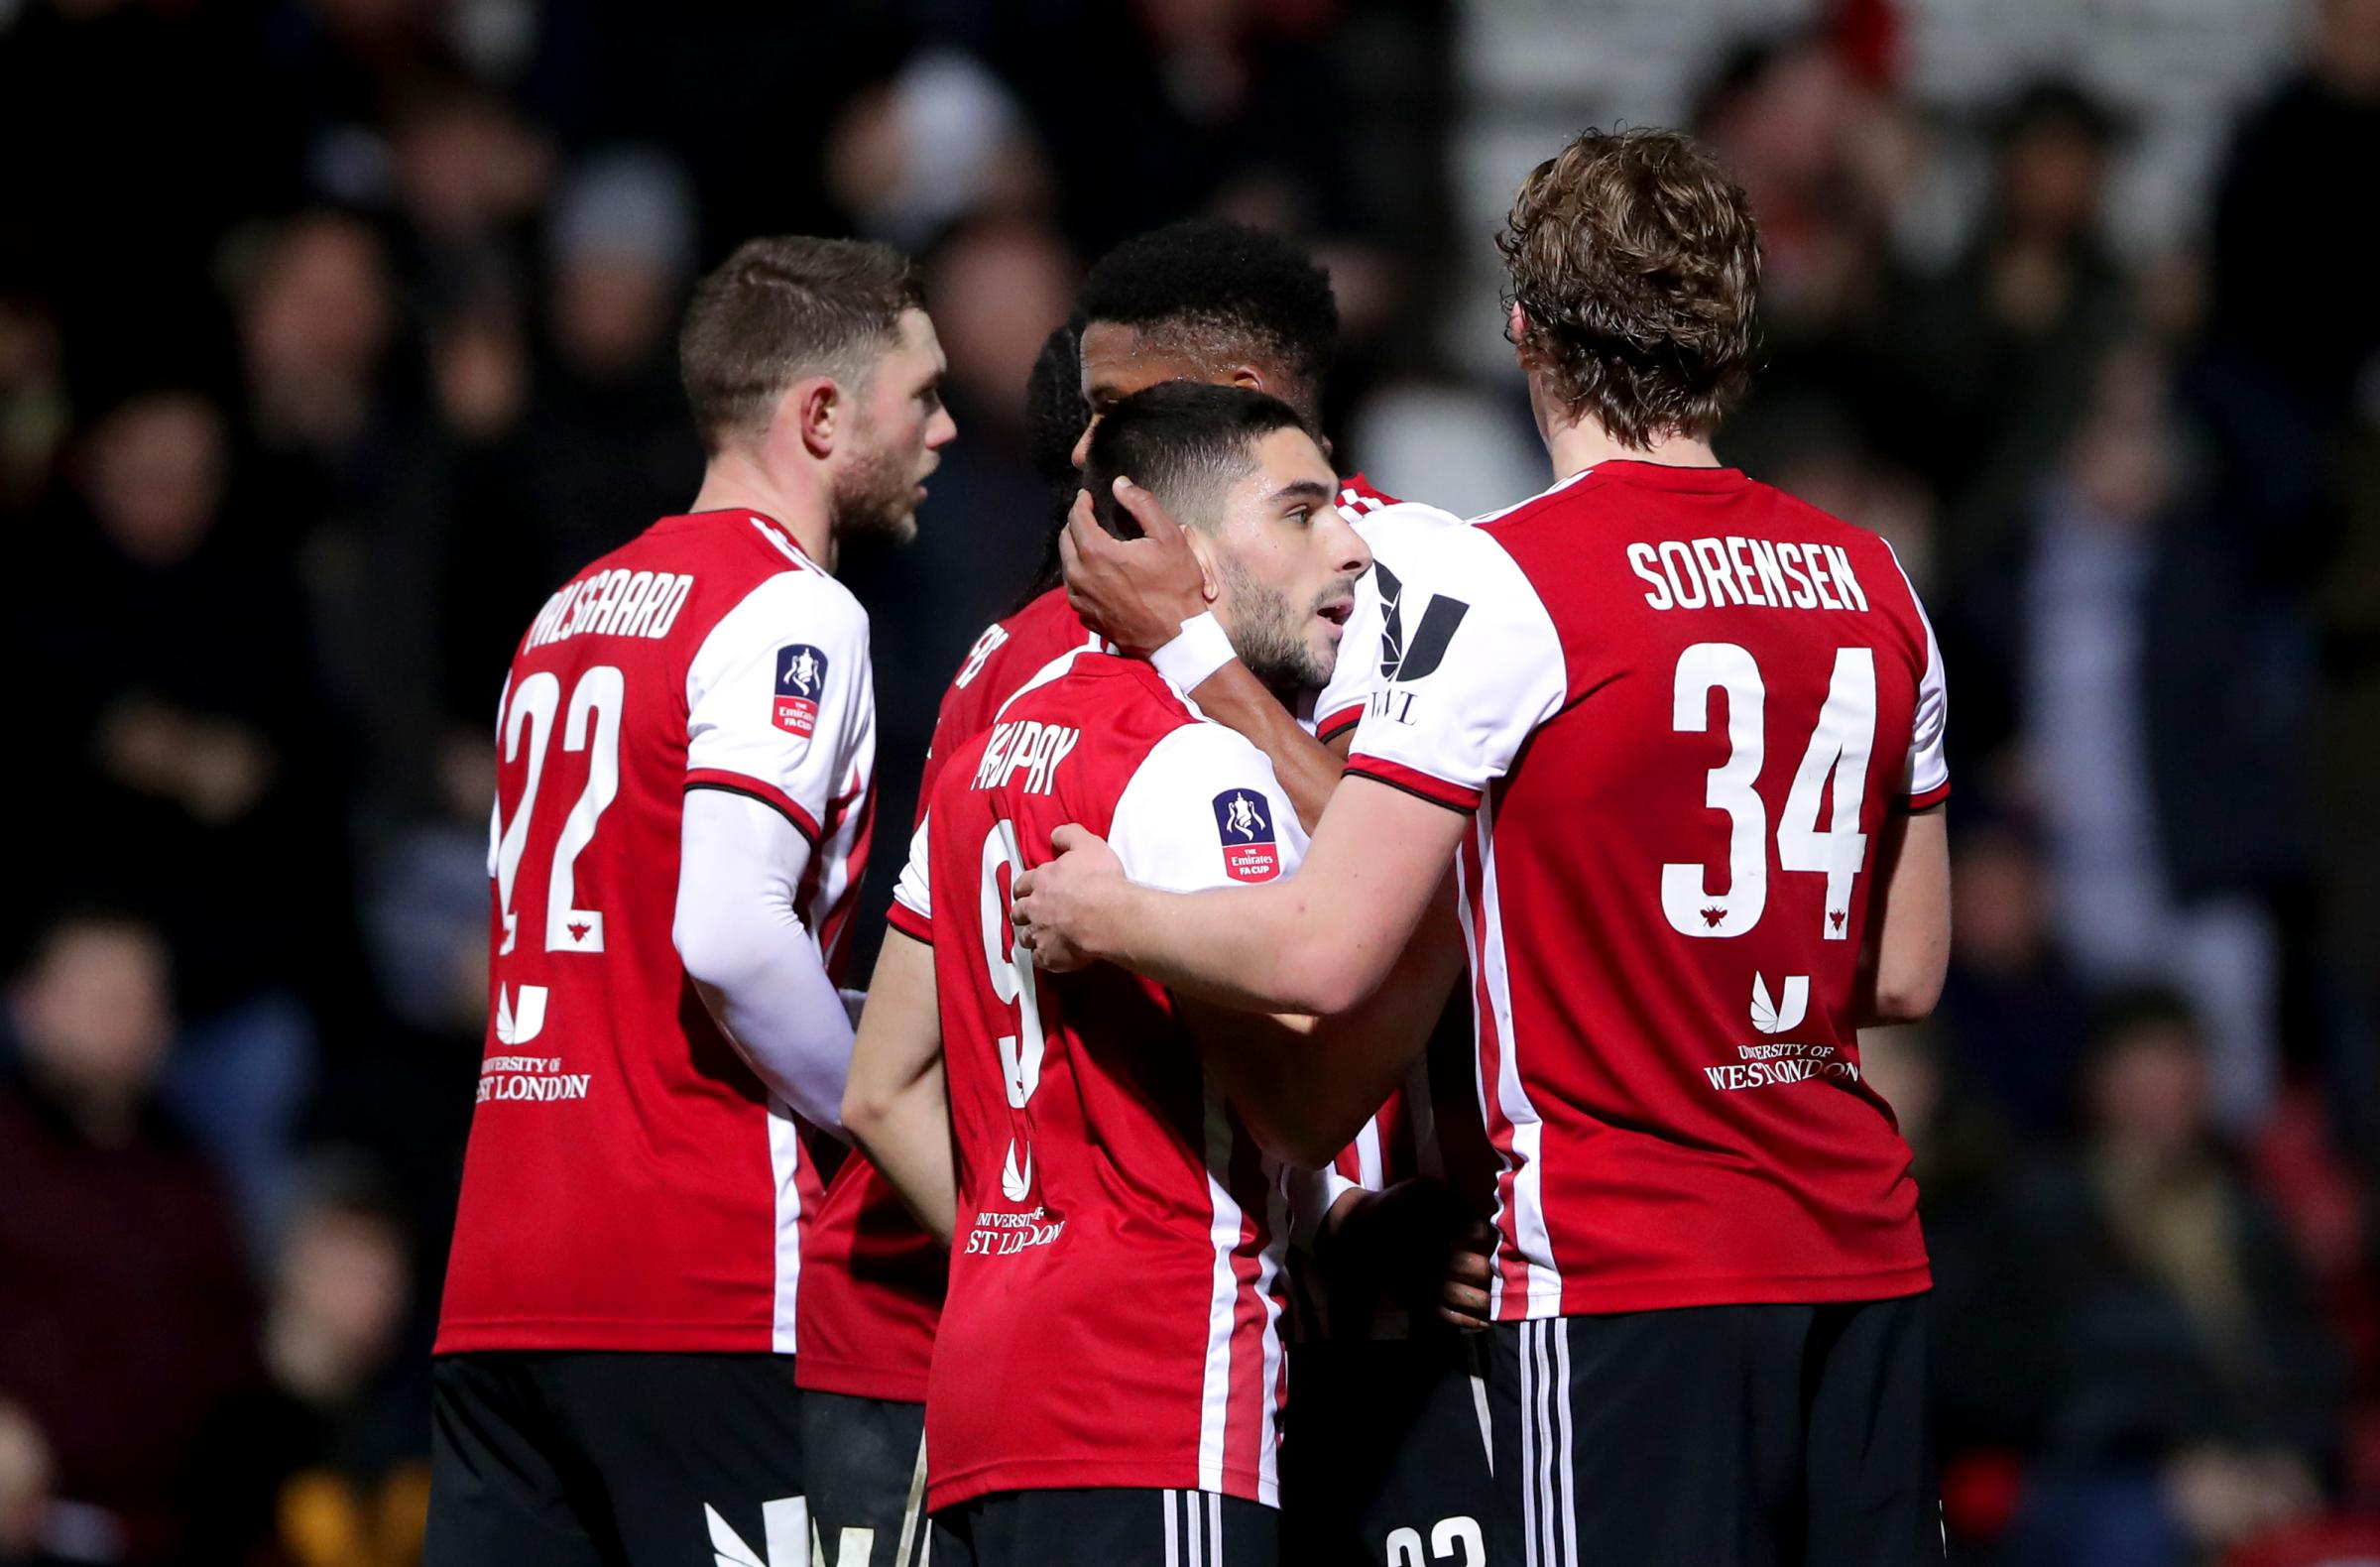 Brentford's Neal Maupay (centre) celebrates scoring his side's third goal of the game with his team mates during the FA Cup fourth round replay match at Griffin Park, London. (PA)